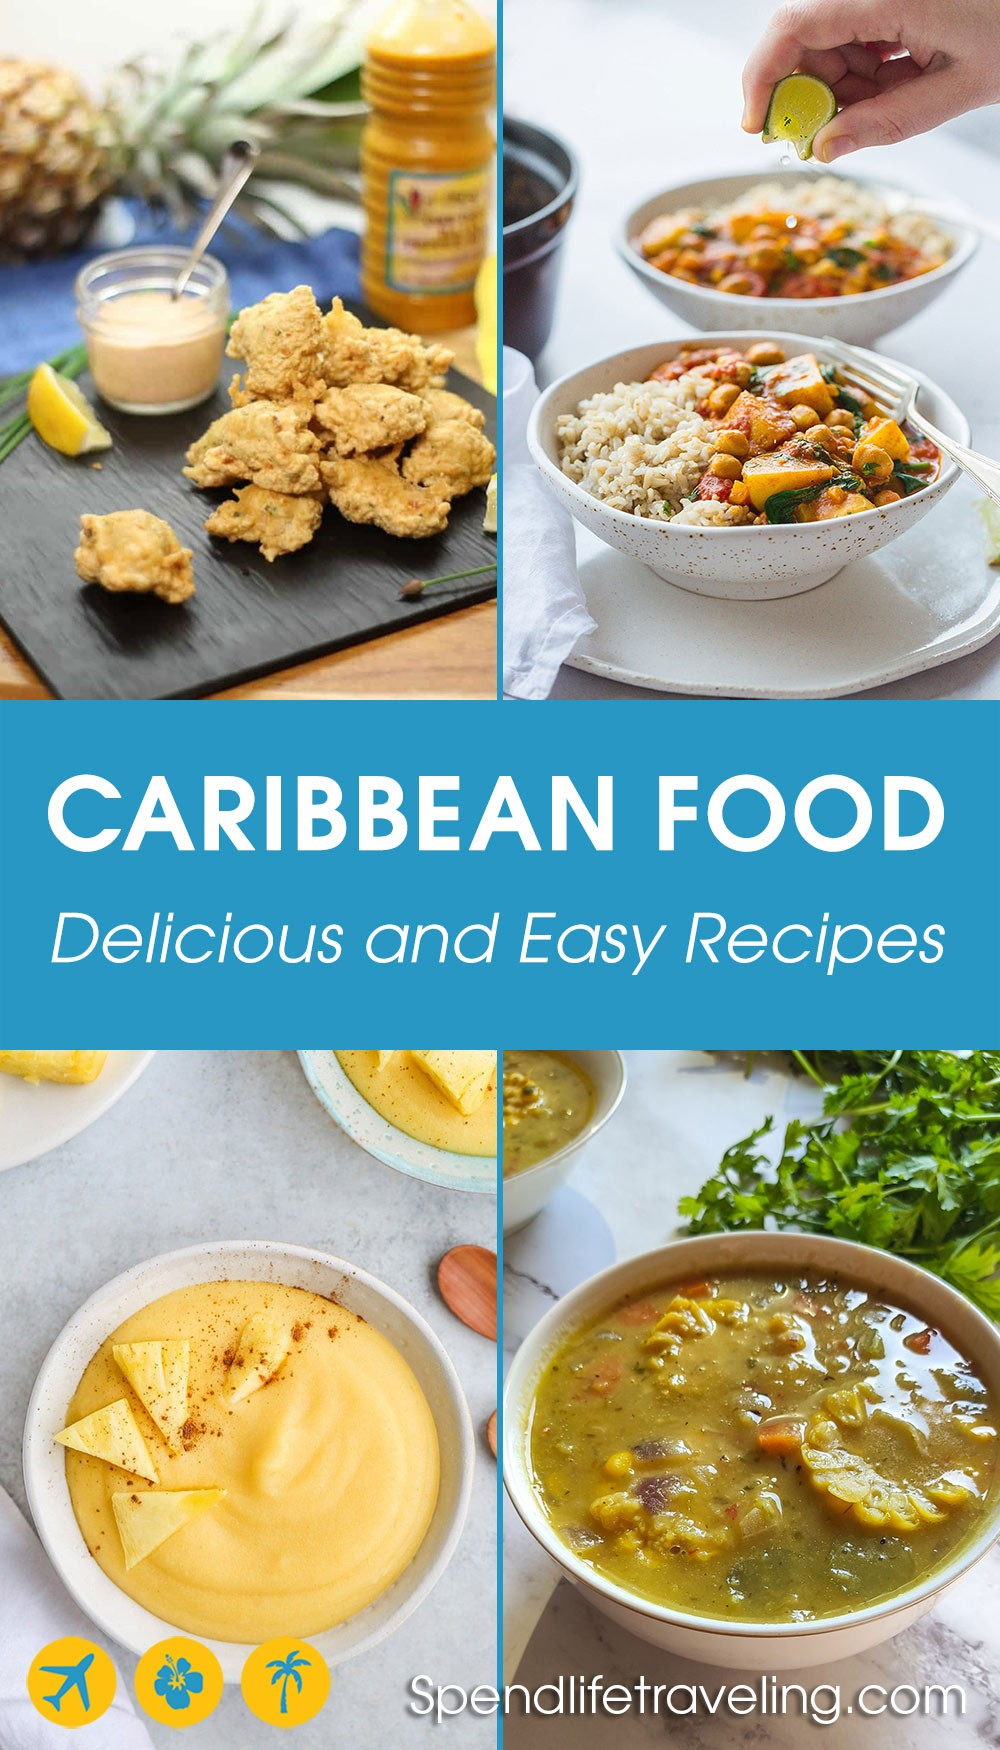 4 pictures of Caribbean food